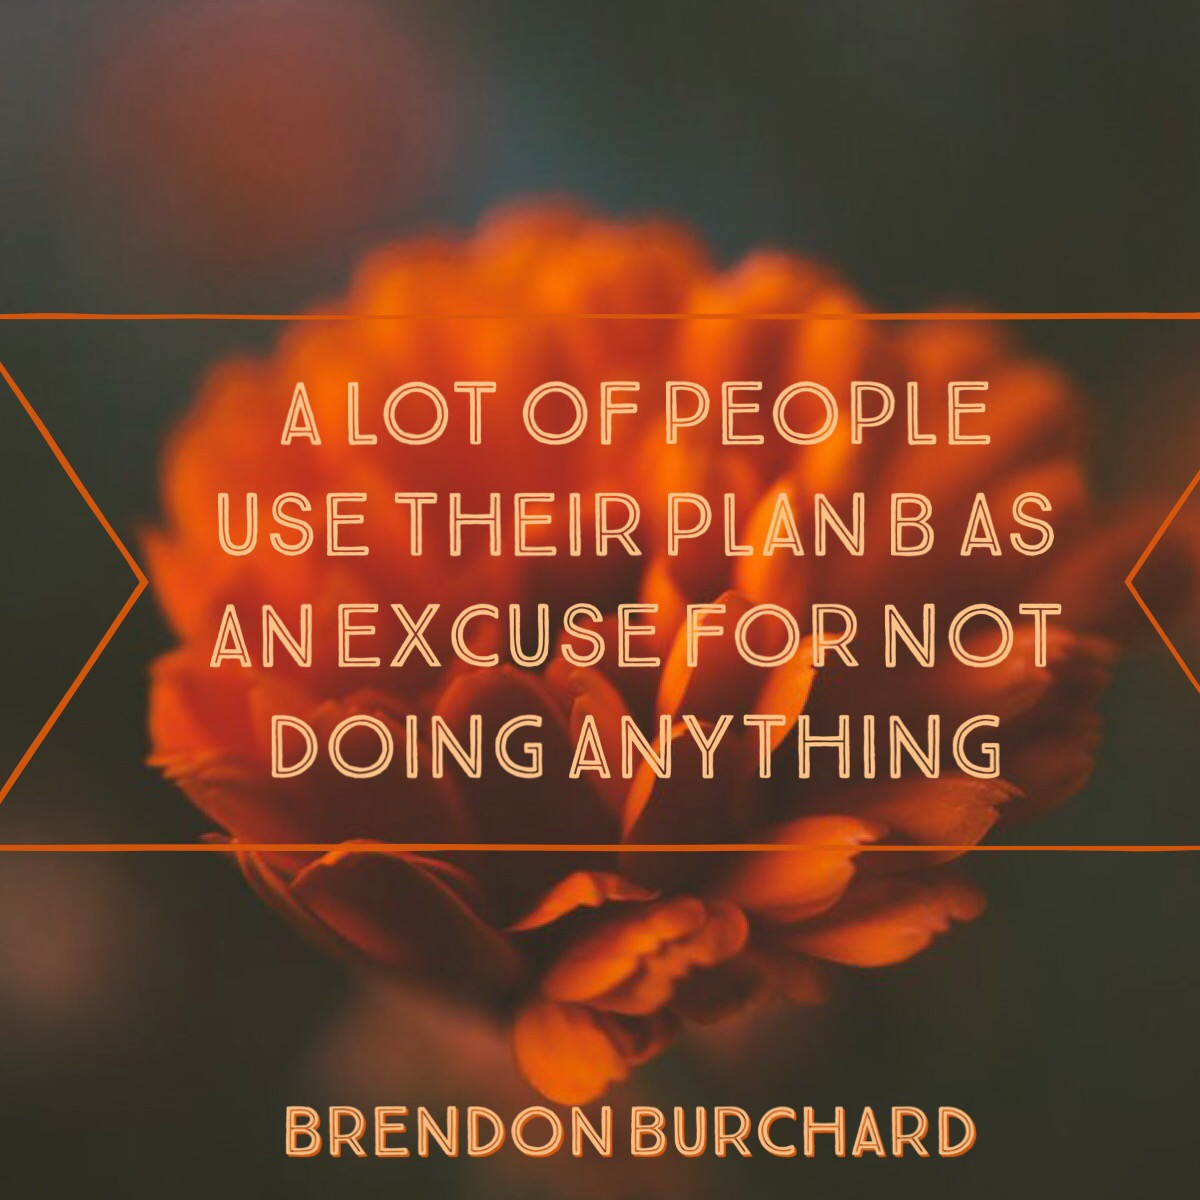 Plan B, motivation manifesto, brendon burchard